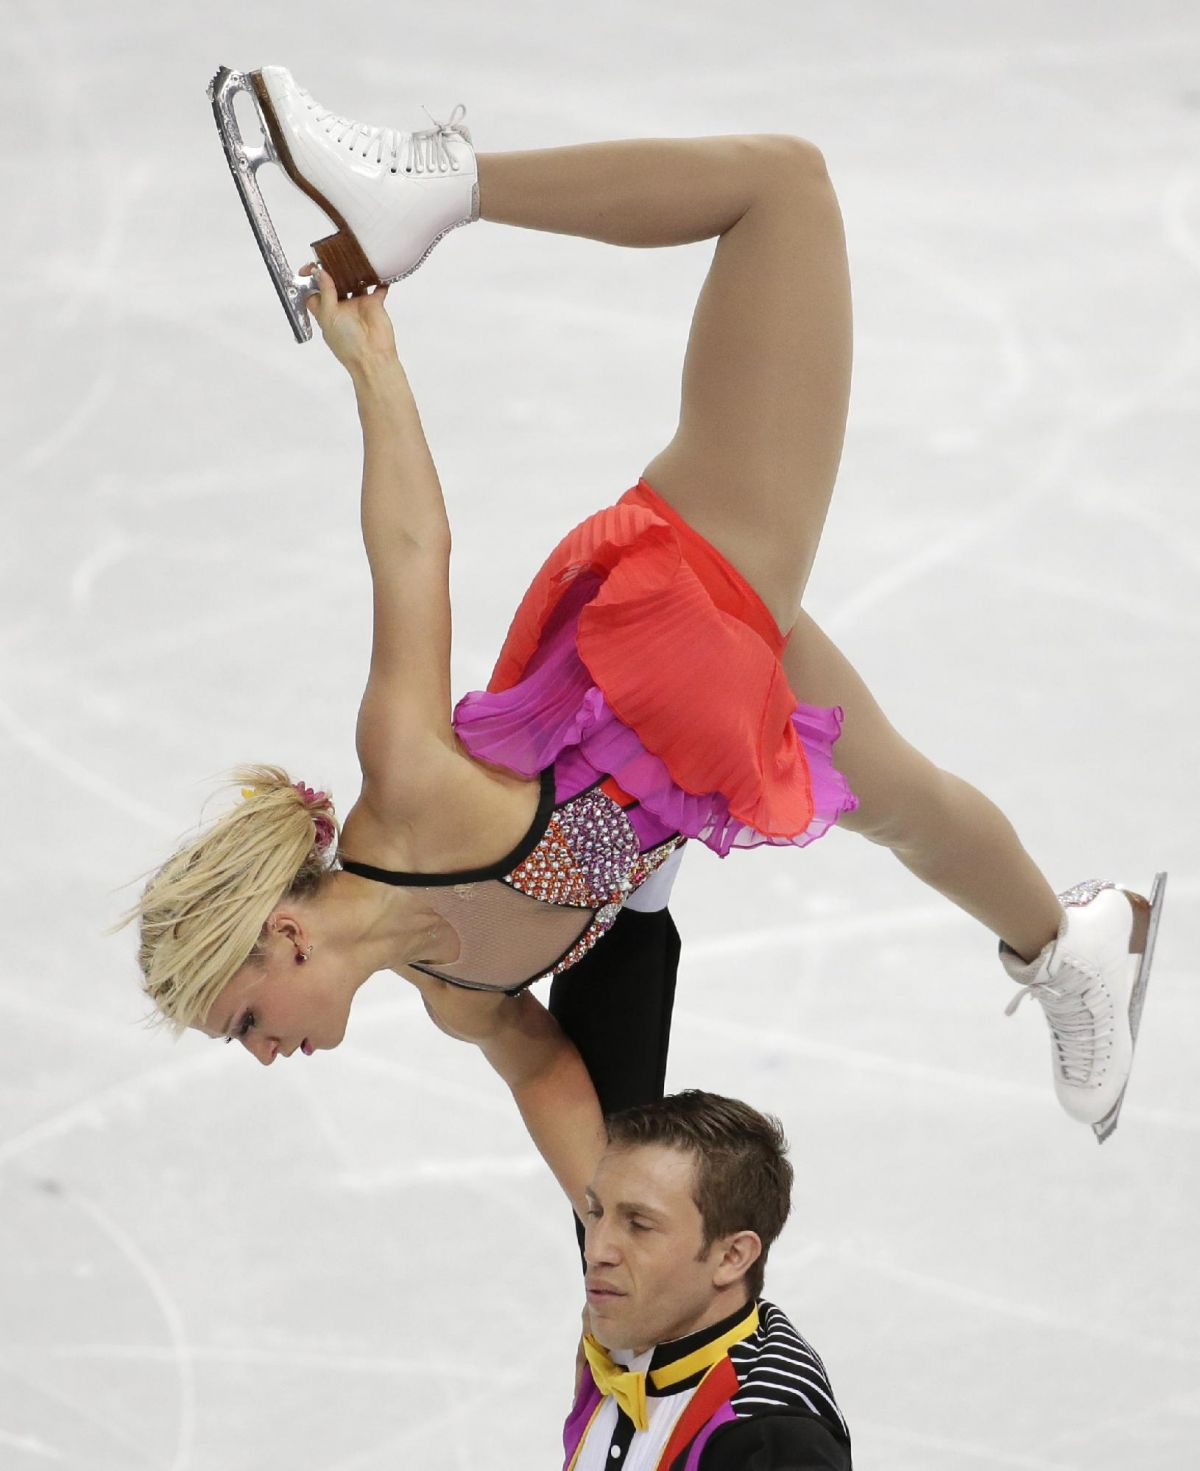 KIRSTEN MOORE-TOWERS and Dylan Moscovitch at 2014 Winter Olympics in Sochi